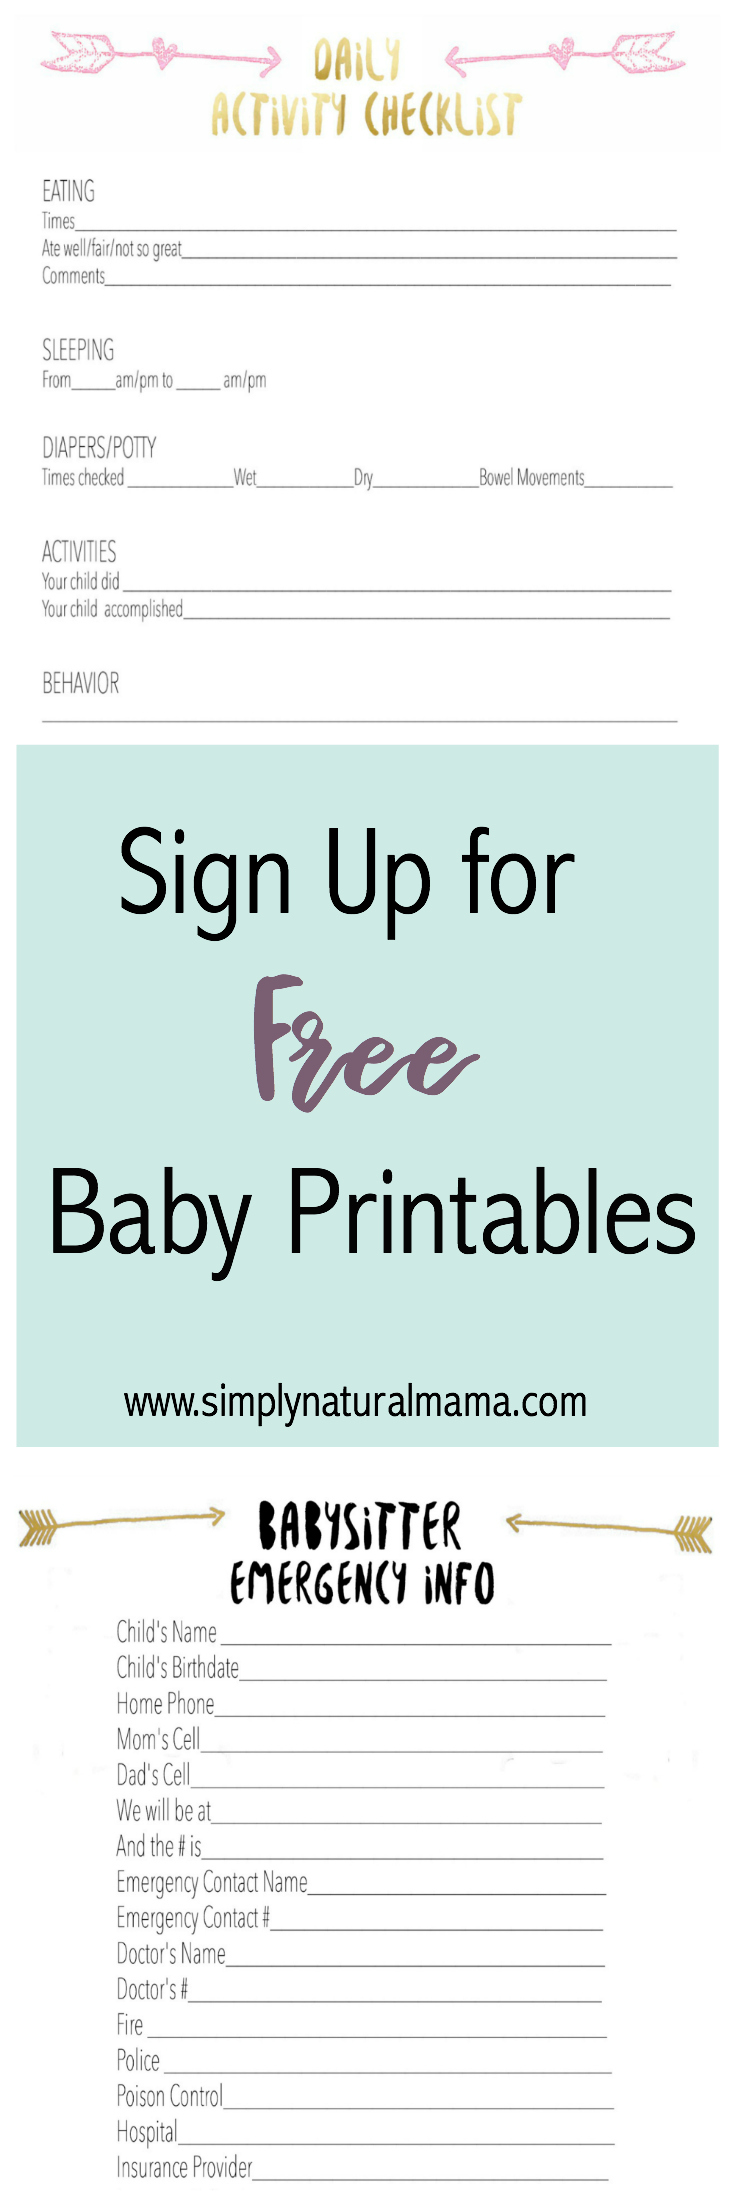 Visit WwwSimplynaturalmamaCom To Sign Up For Two Free Printables